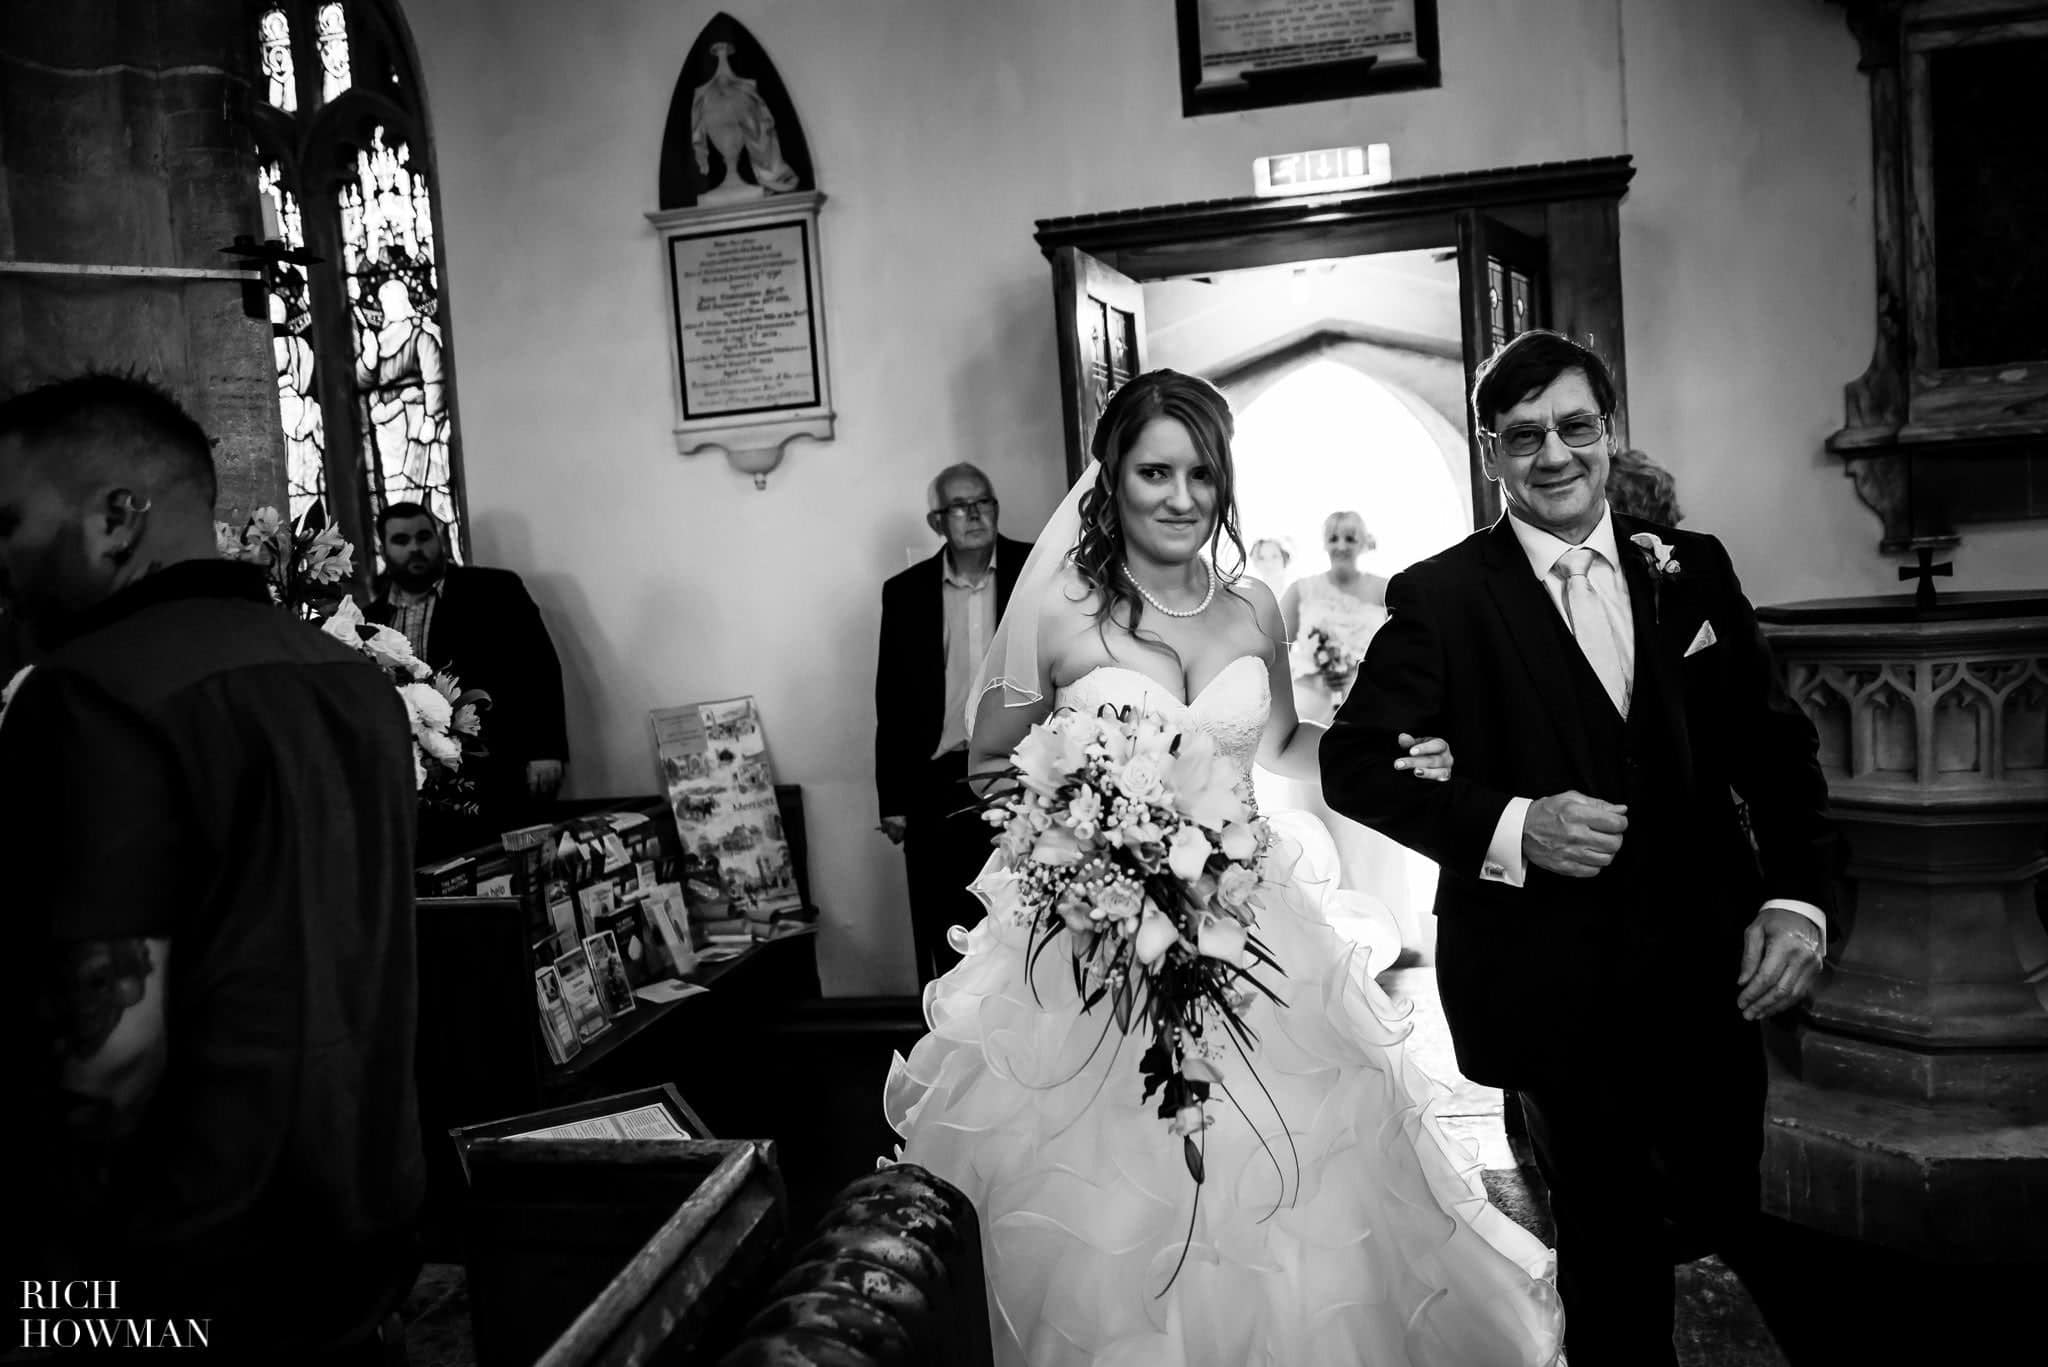 Documentary photograph of the bride and her father entering the church